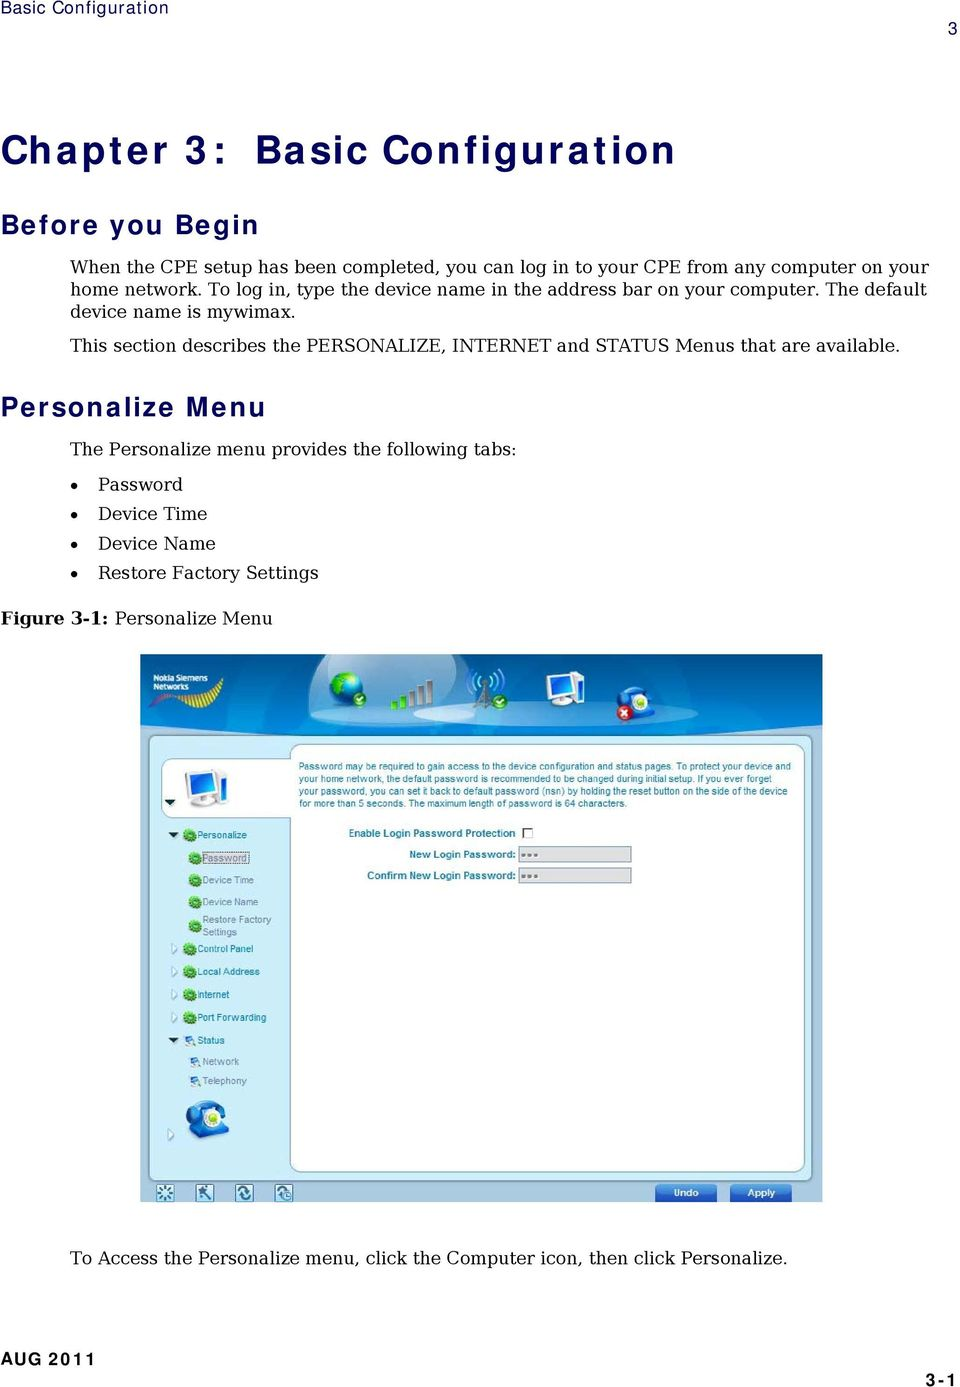 This section describes the PERSONALIZE, INTERNET and STATUS Menus that are available.